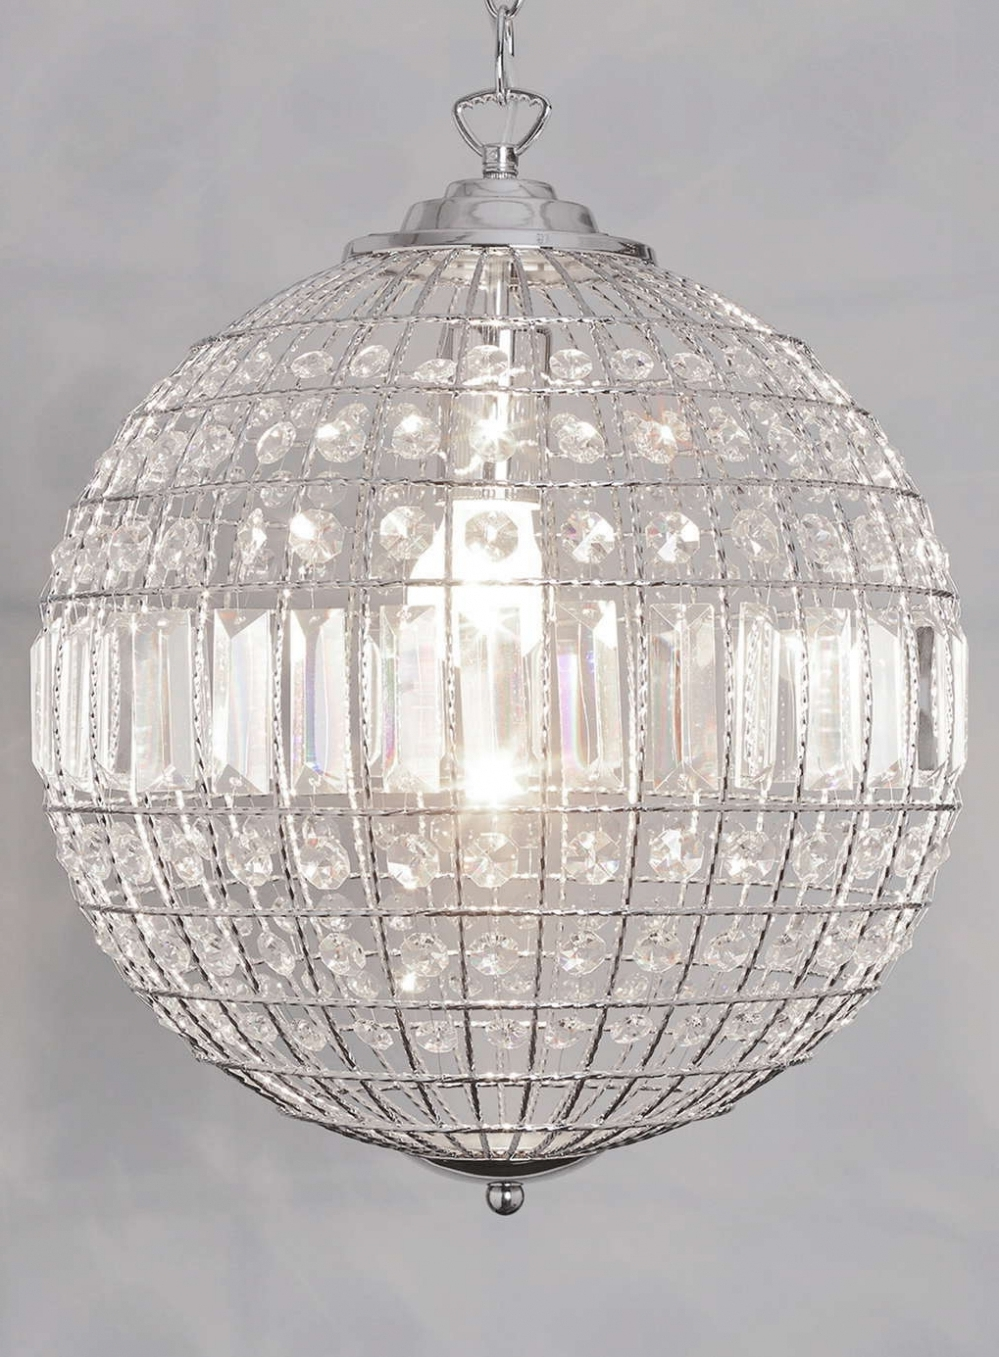 Crystal Globe Chandelier With Most Popular Home Decor: Chandeliers Design : Wonderful Crystal Globe Chandelier (View 6 of 20)